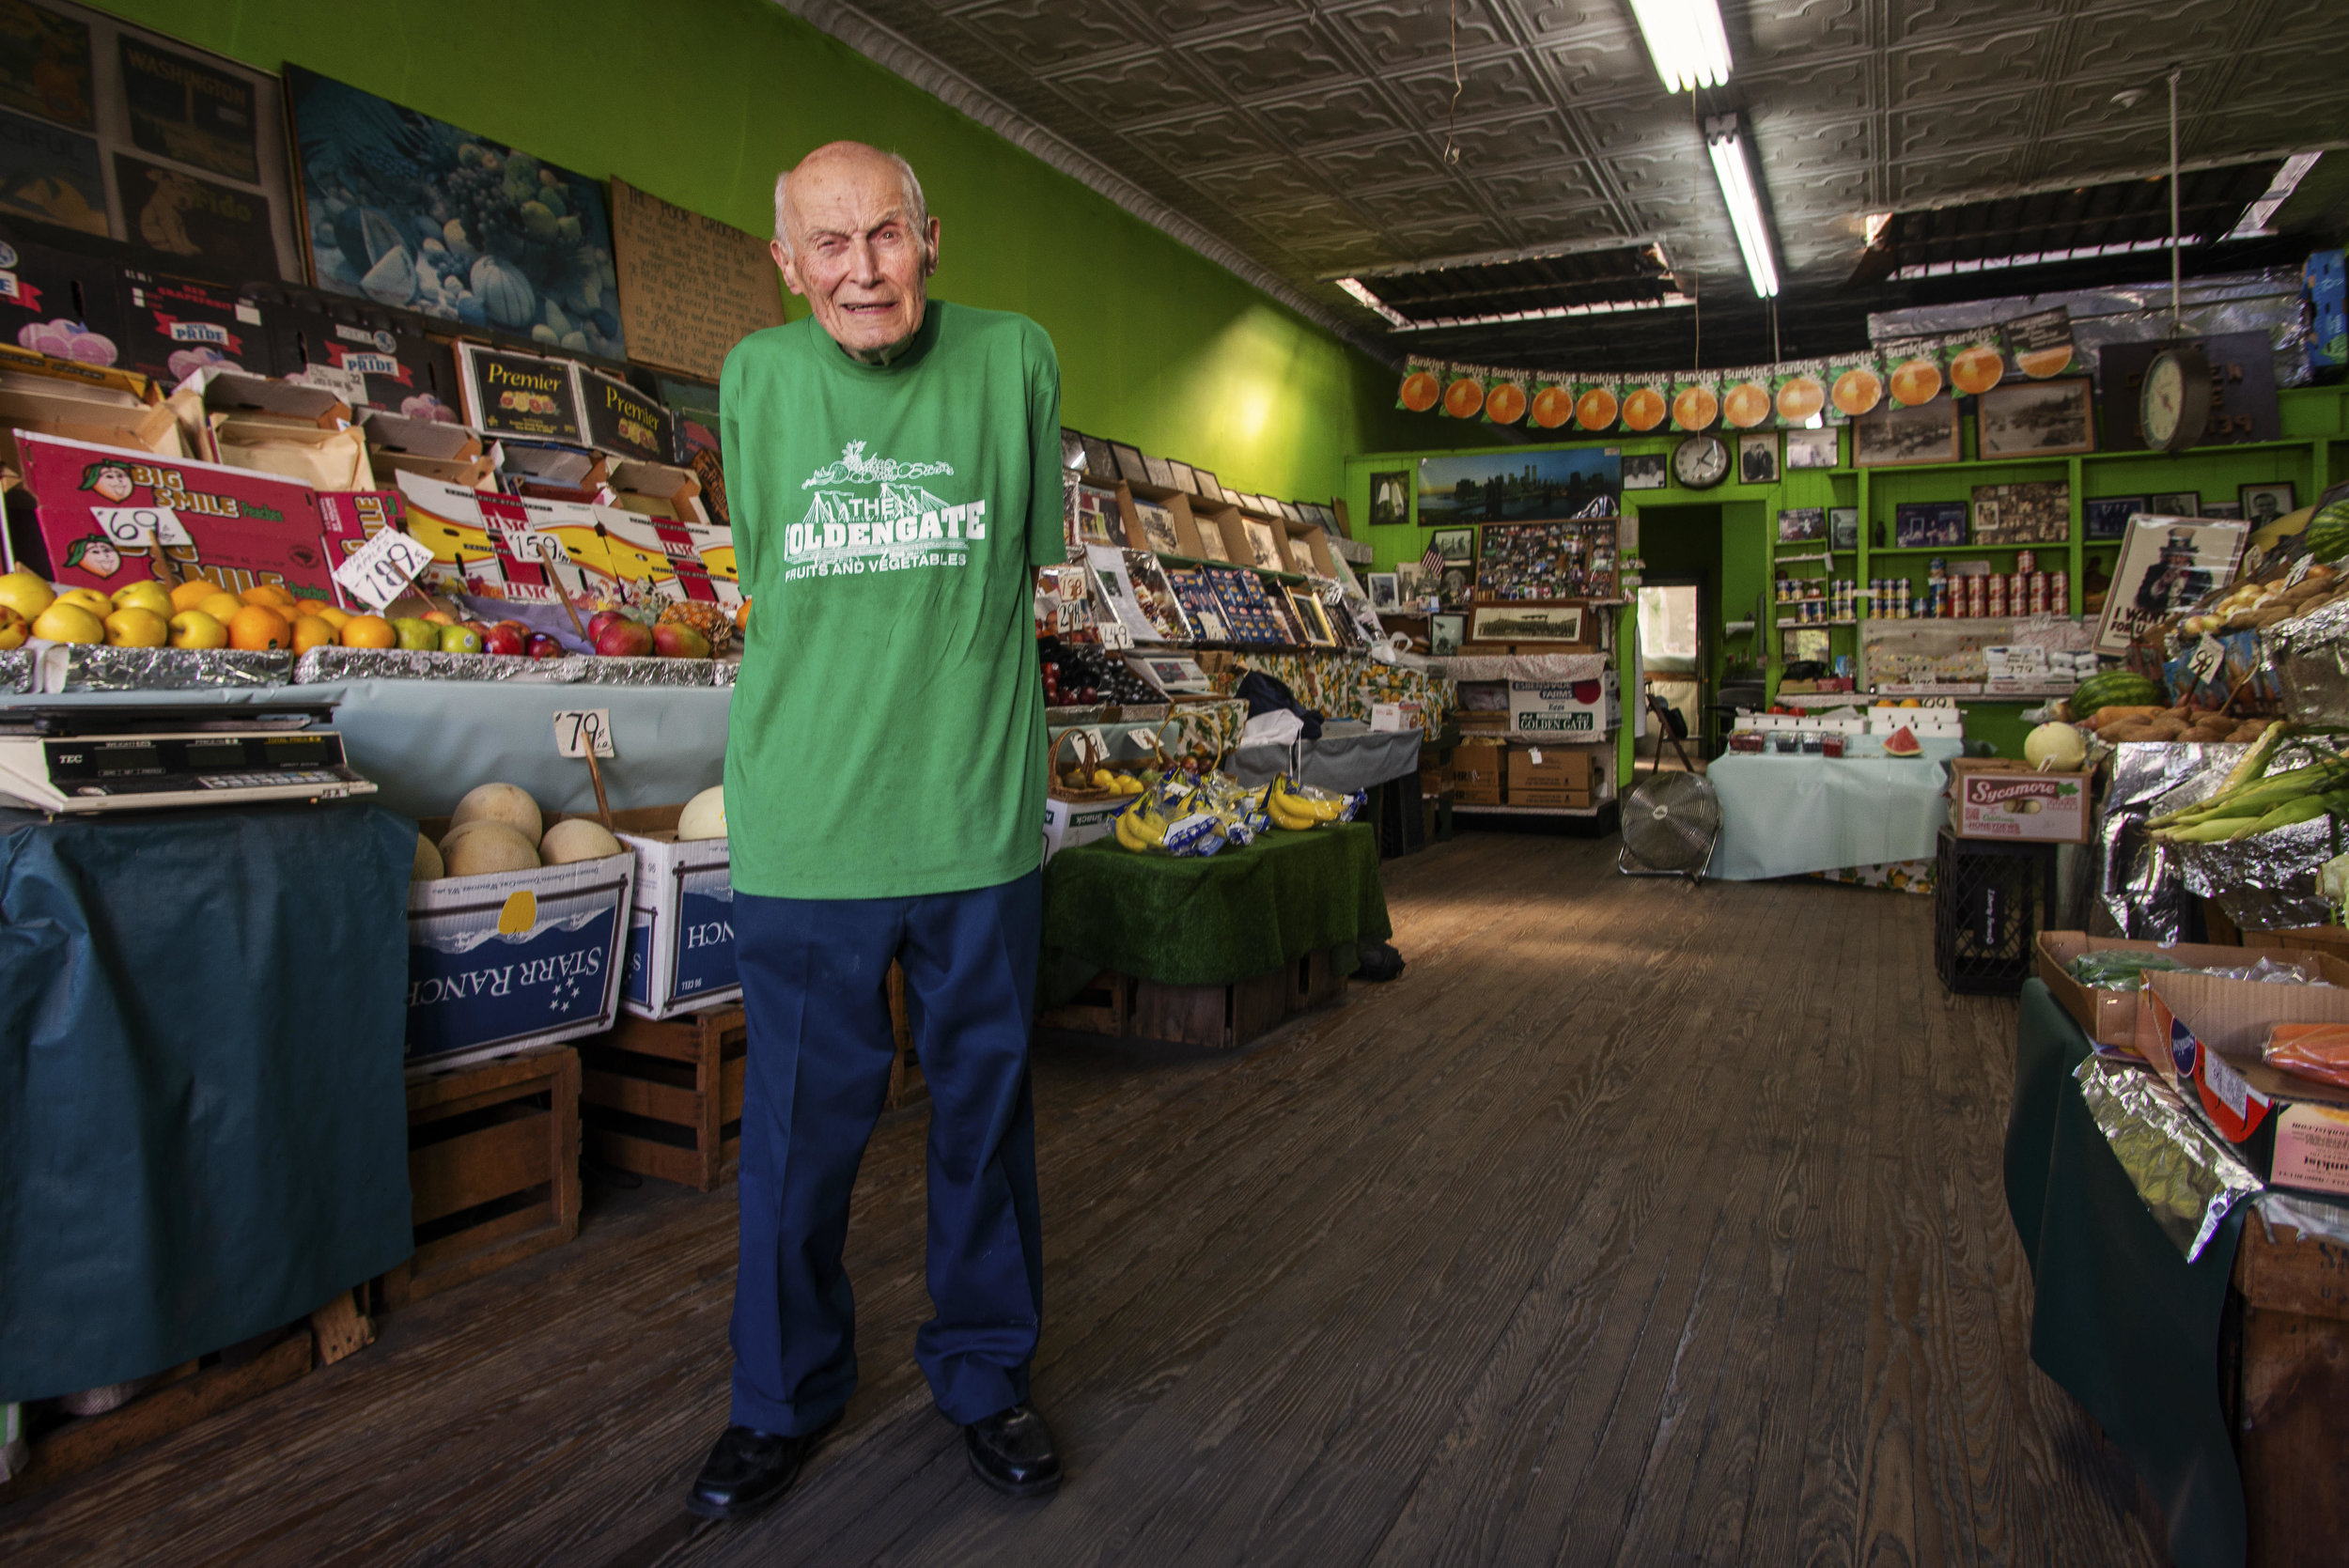 Owner of GoldenGates grocer on Flatbush Avenue